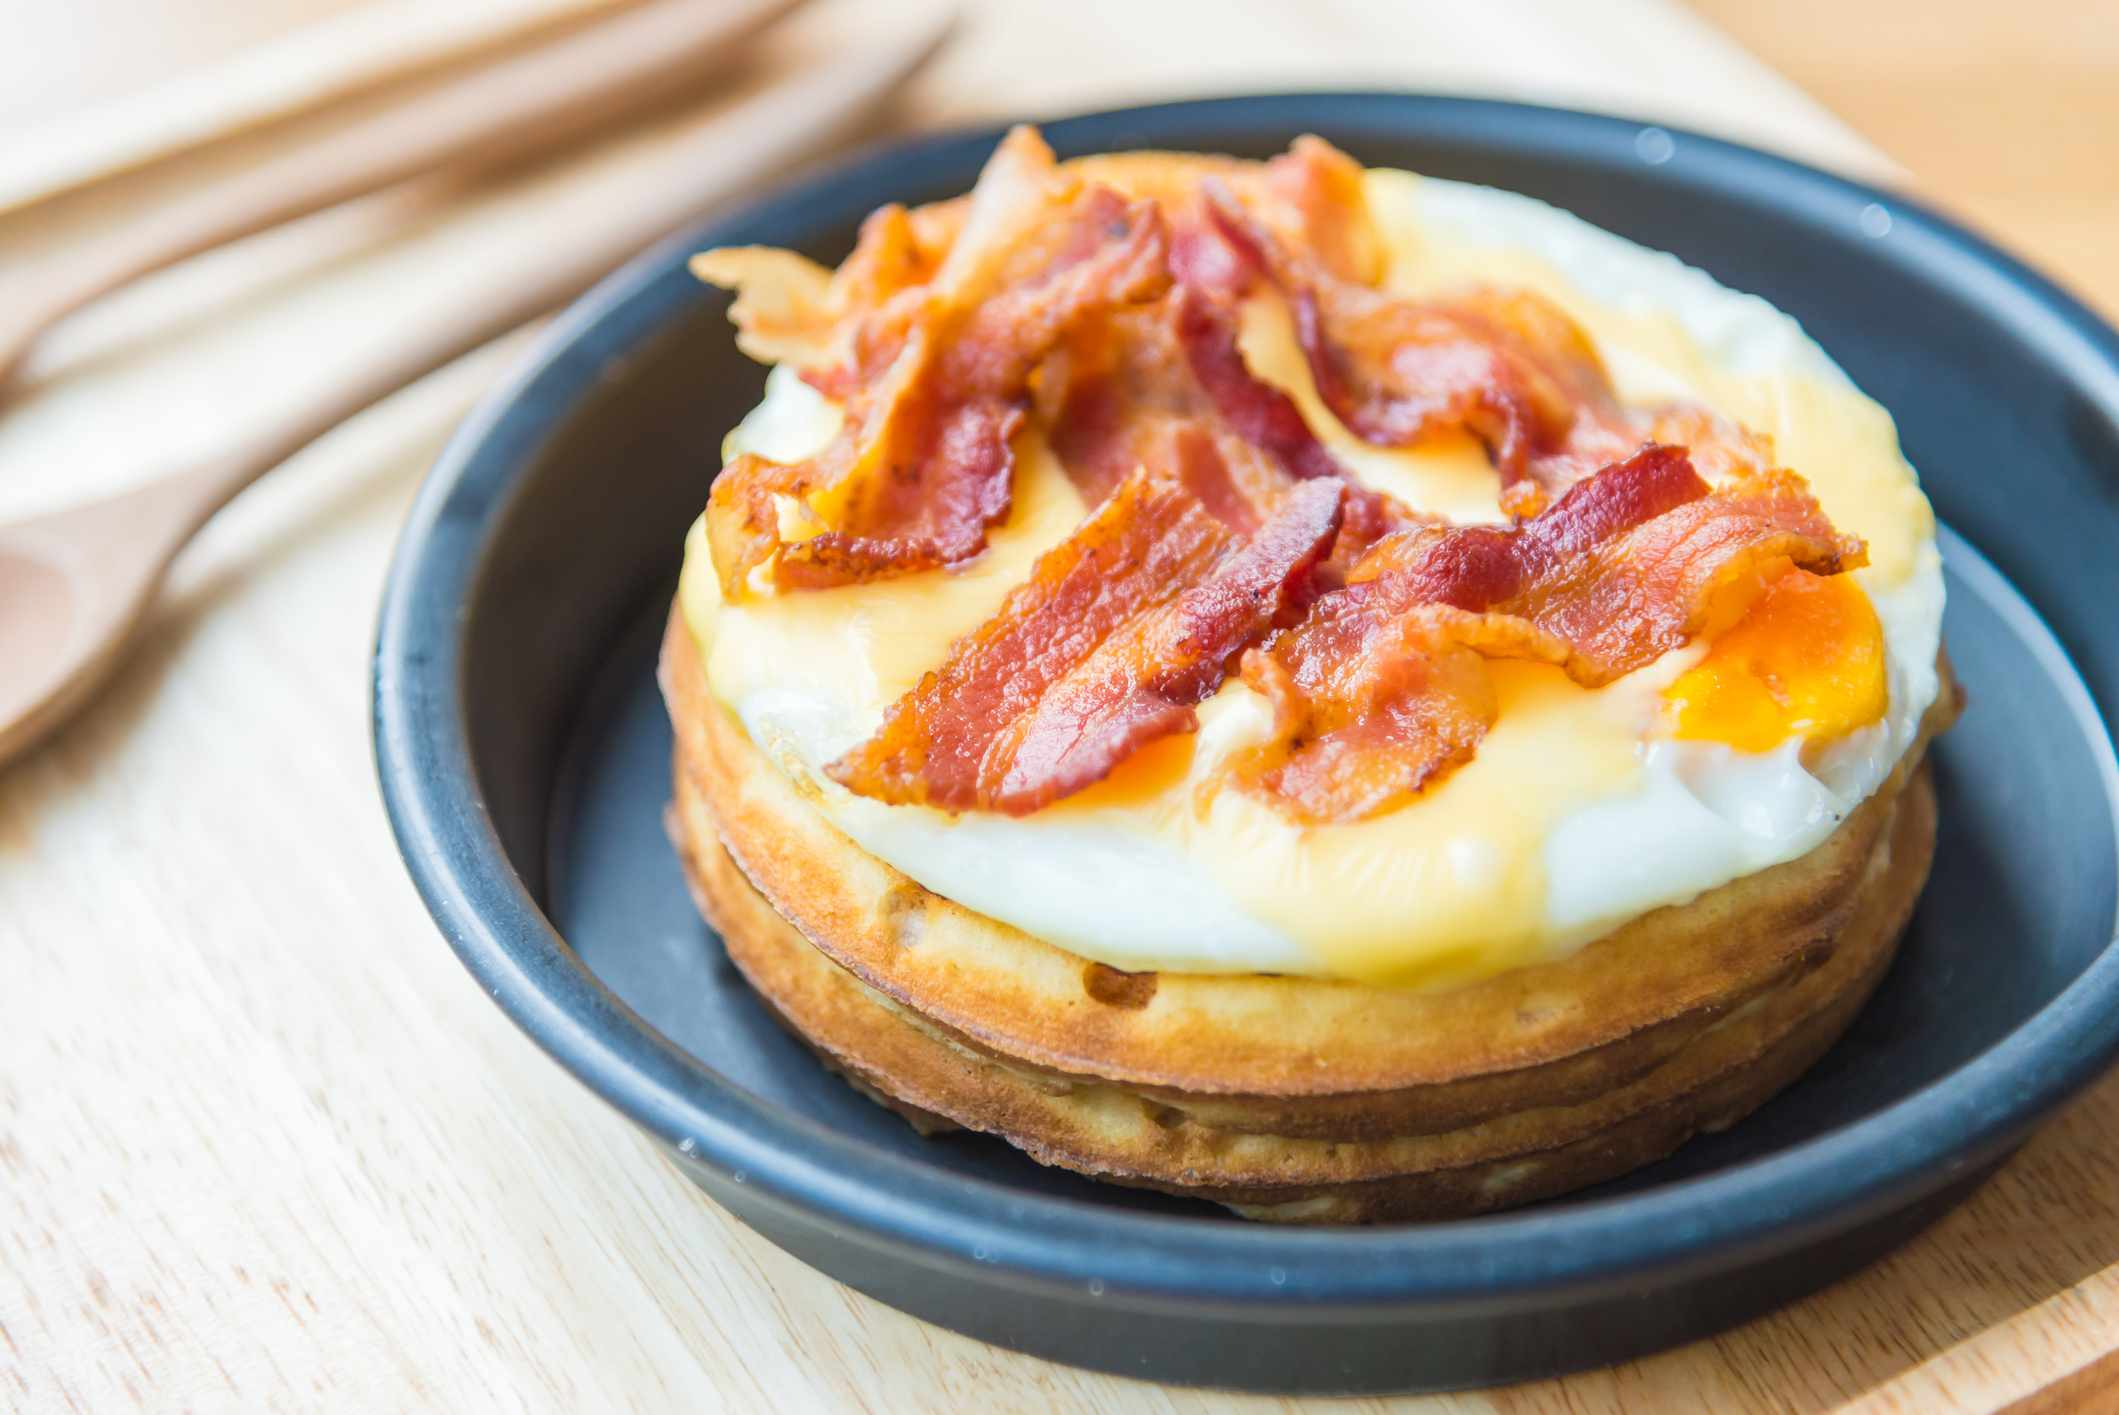 Bacon and eggs on waffle